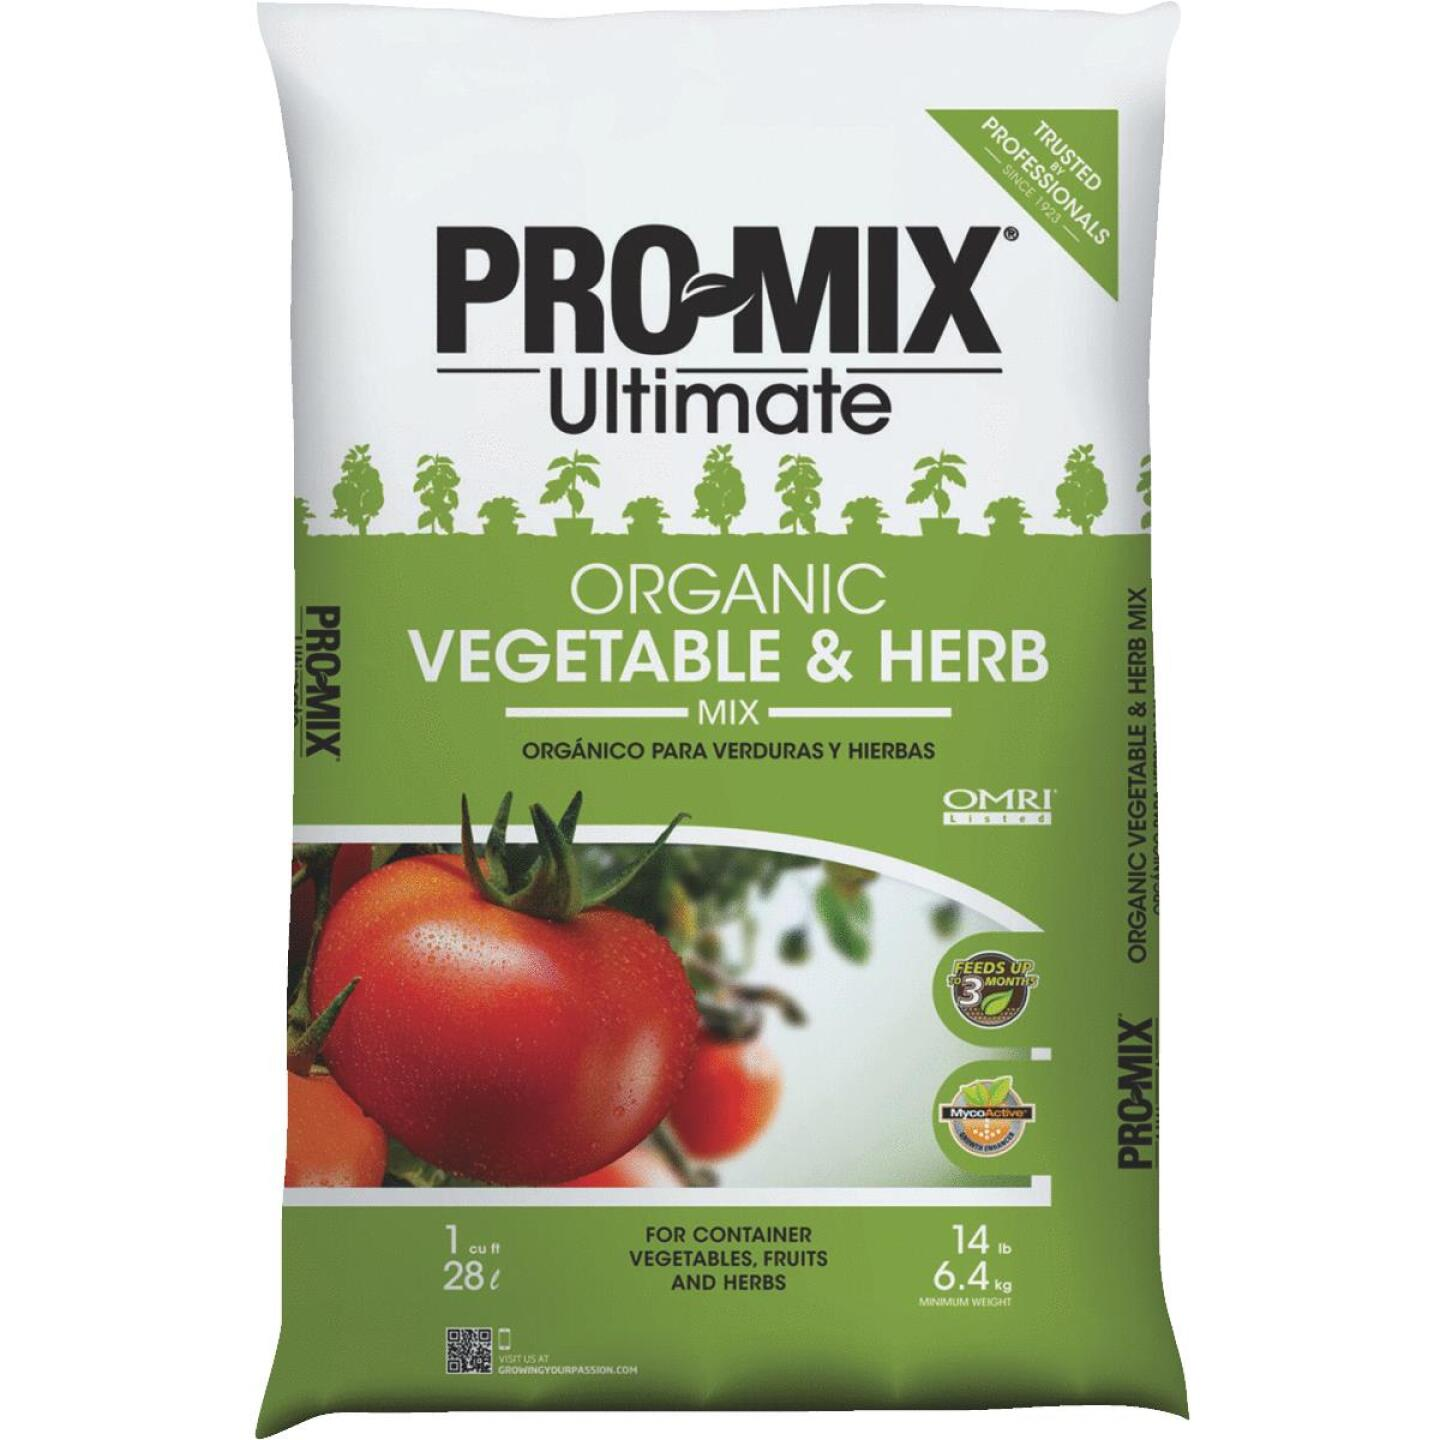 Pro Mix Ultimate 1 Cu. Ft. Container Organic Vegetable & Herb Mix Garden Soil Image 1